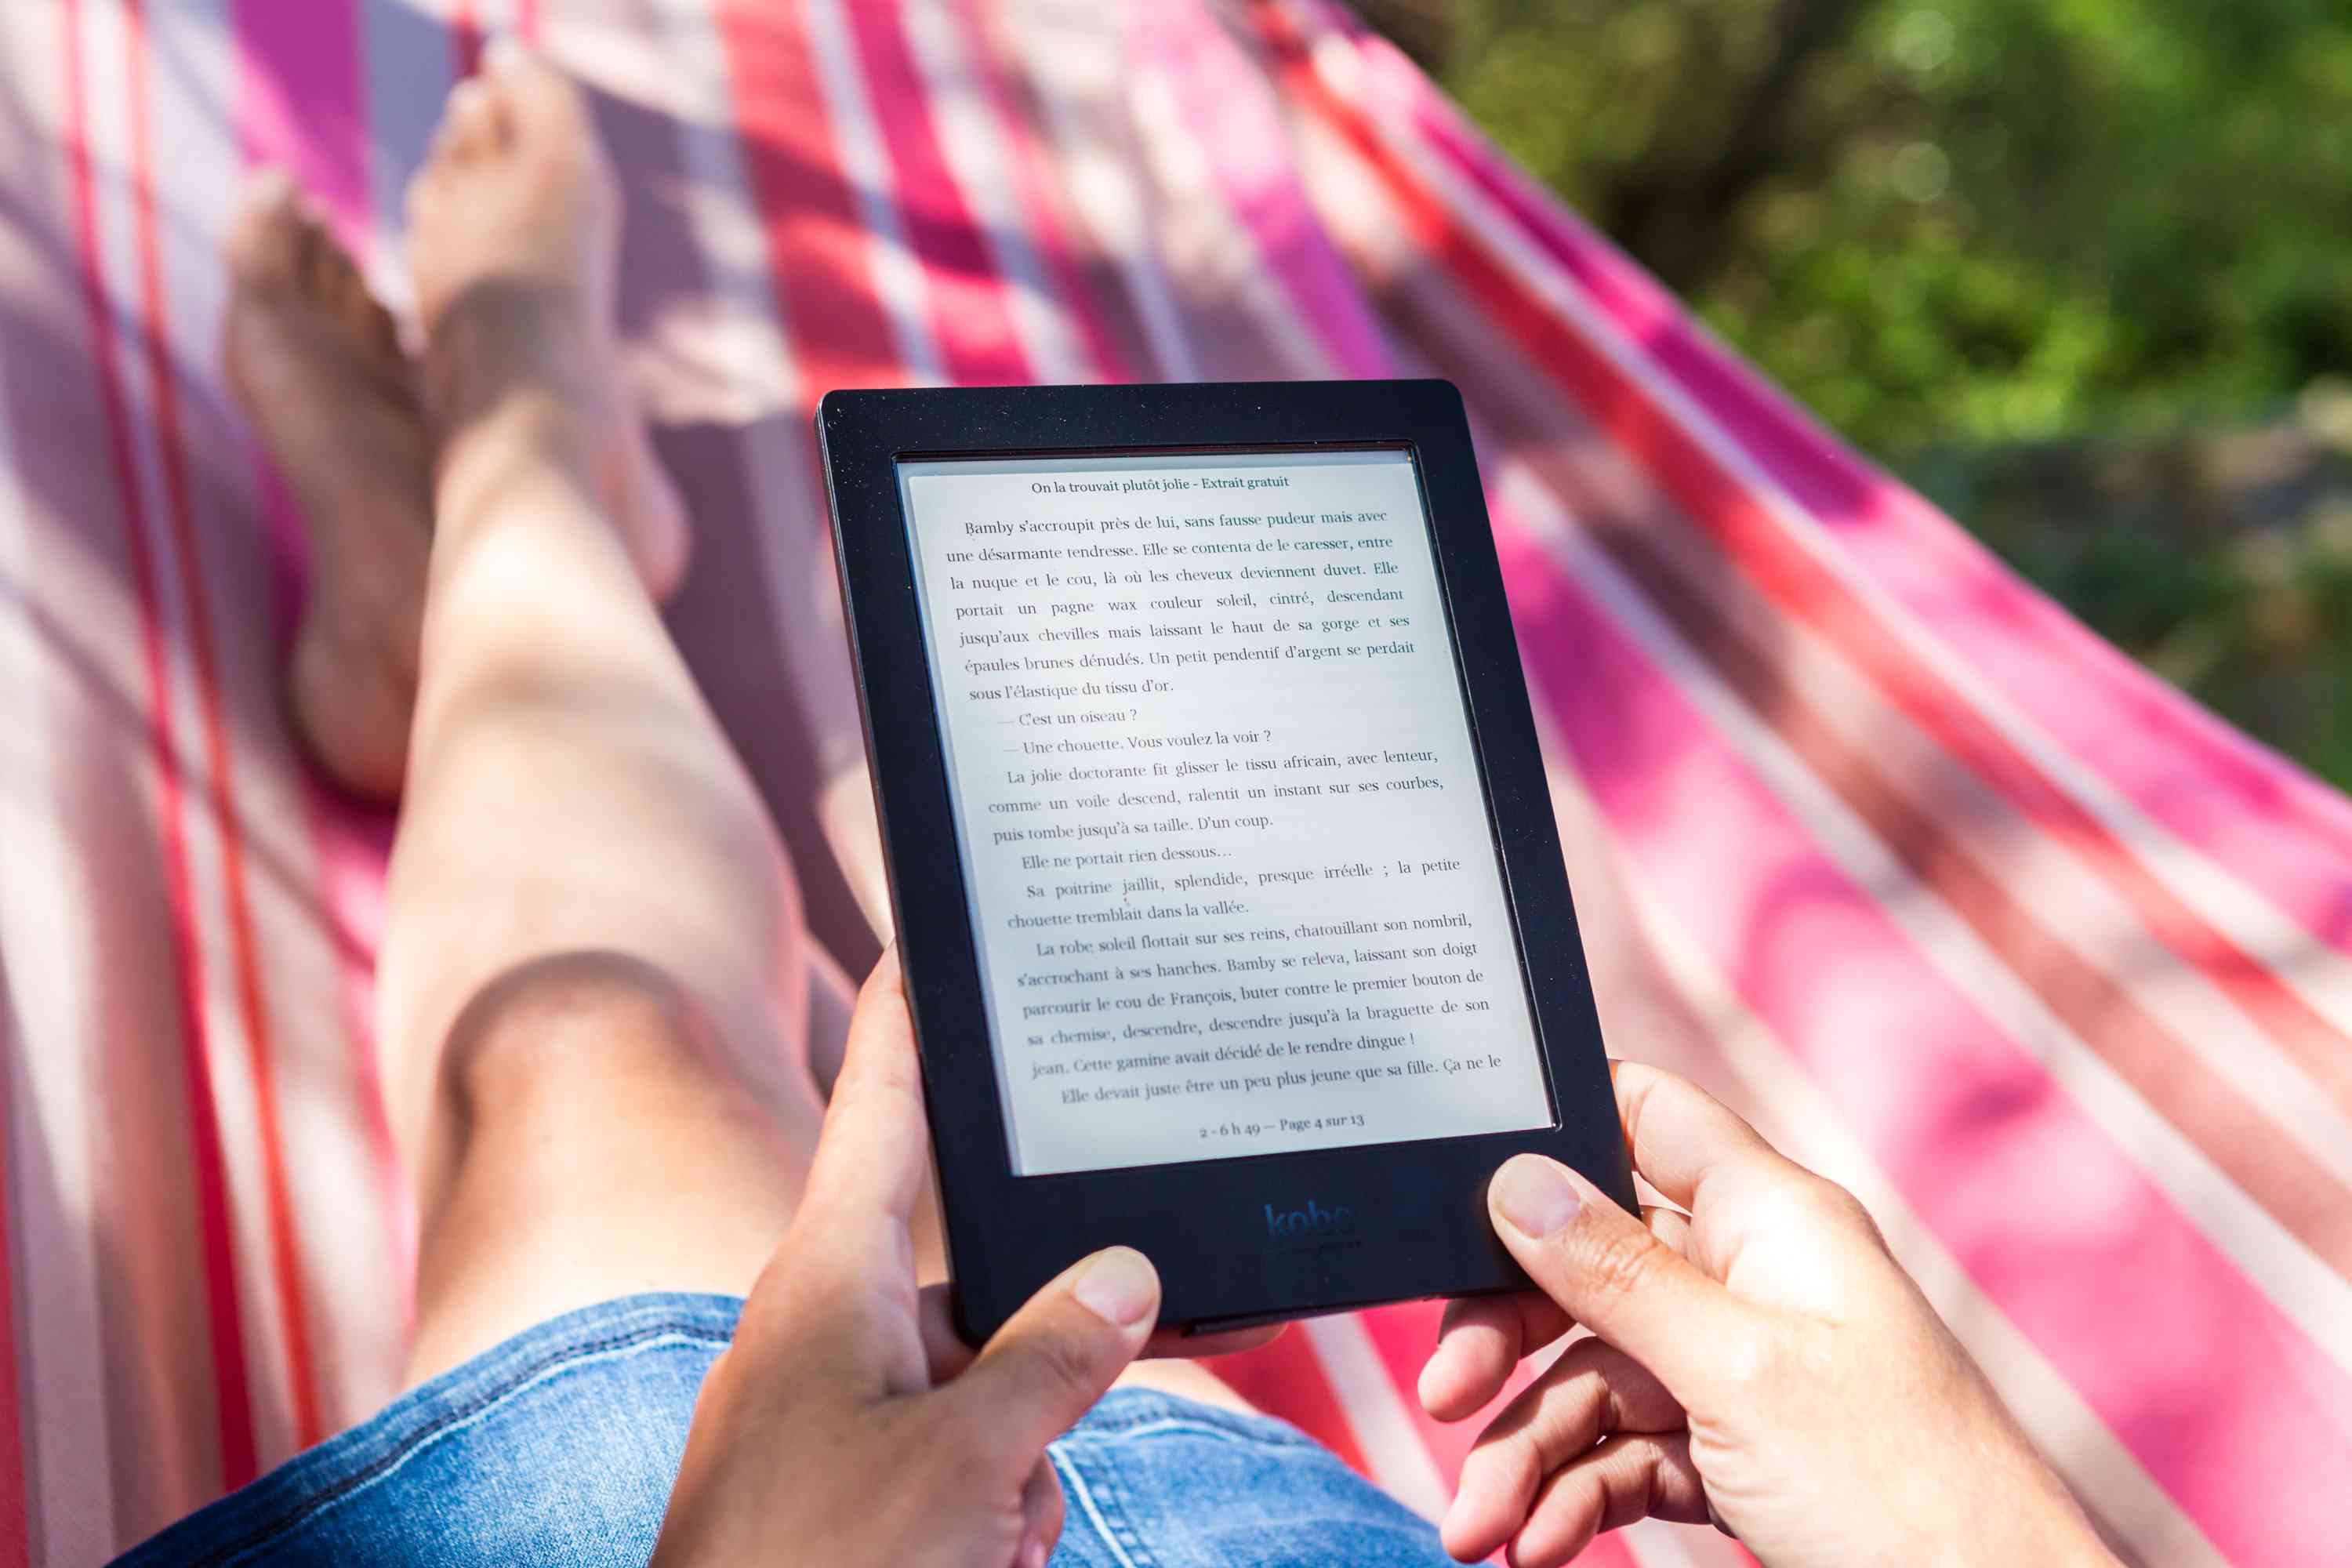 Someone reading on an Amazon Kindle while sitting in a hammock outside.